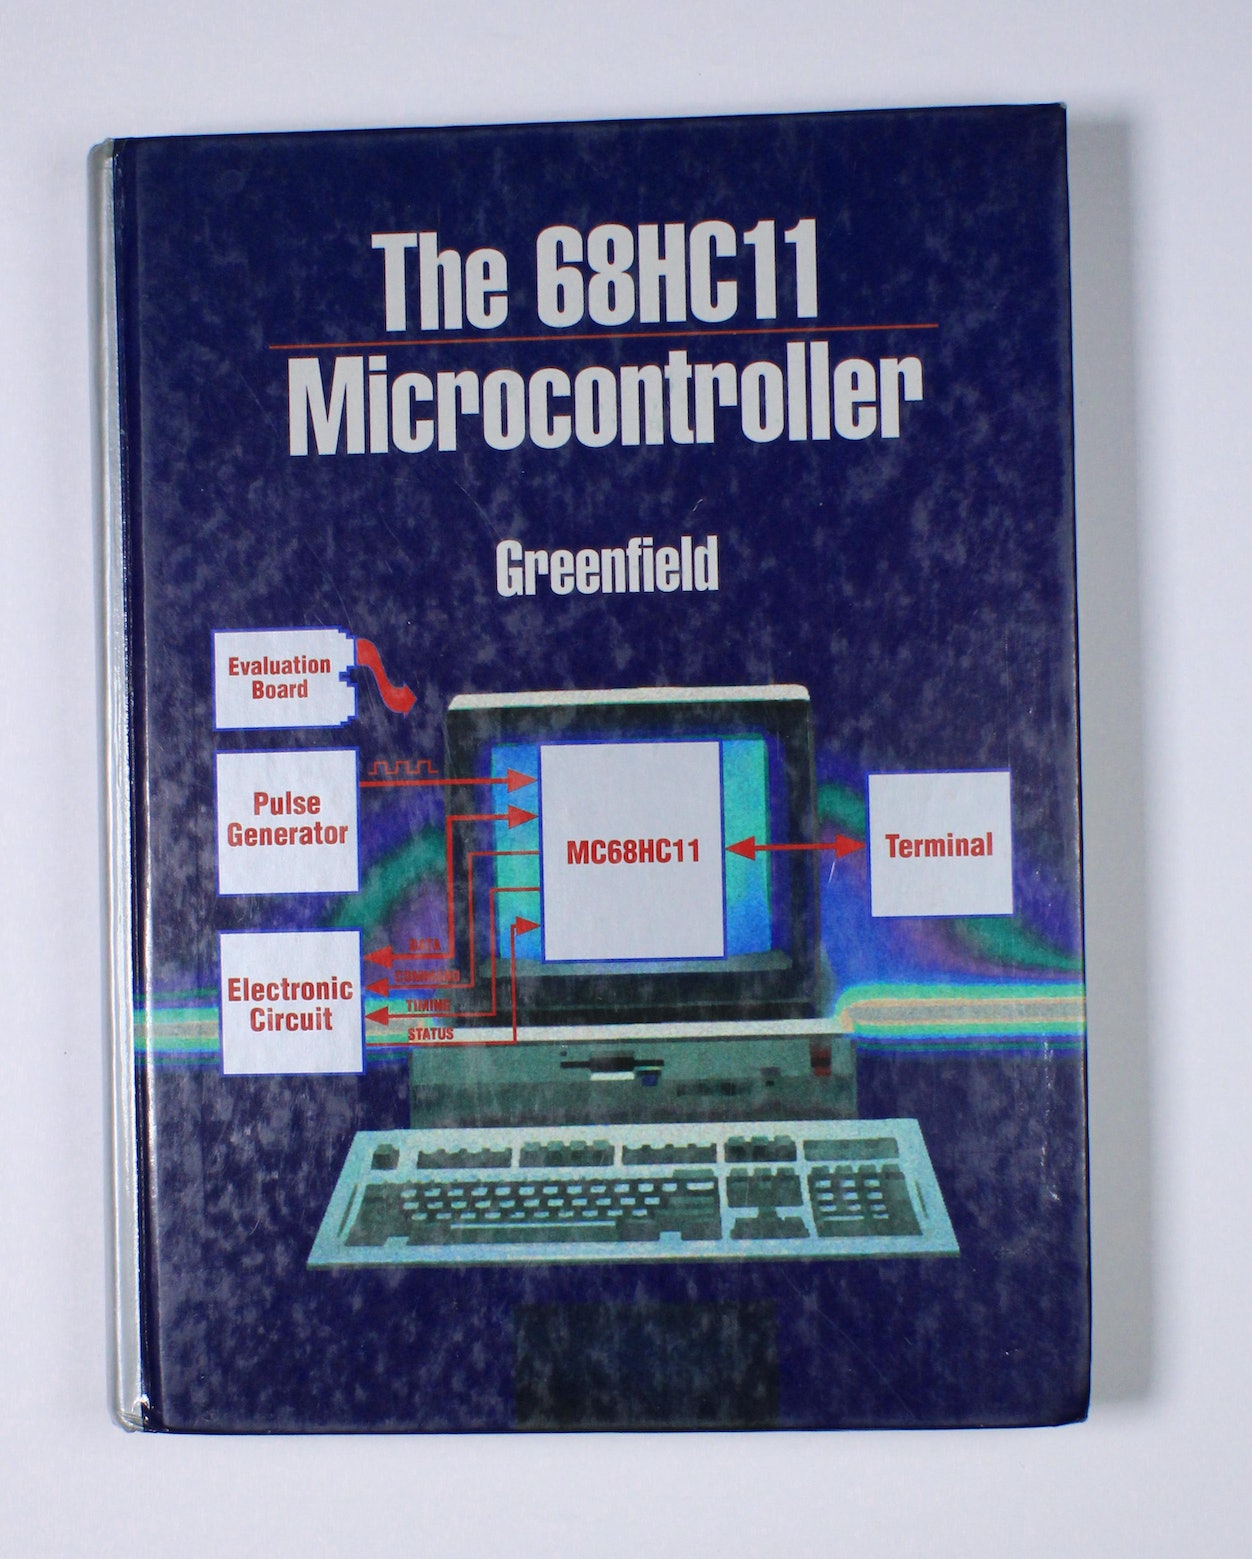 The 68HC11 Microcontroller